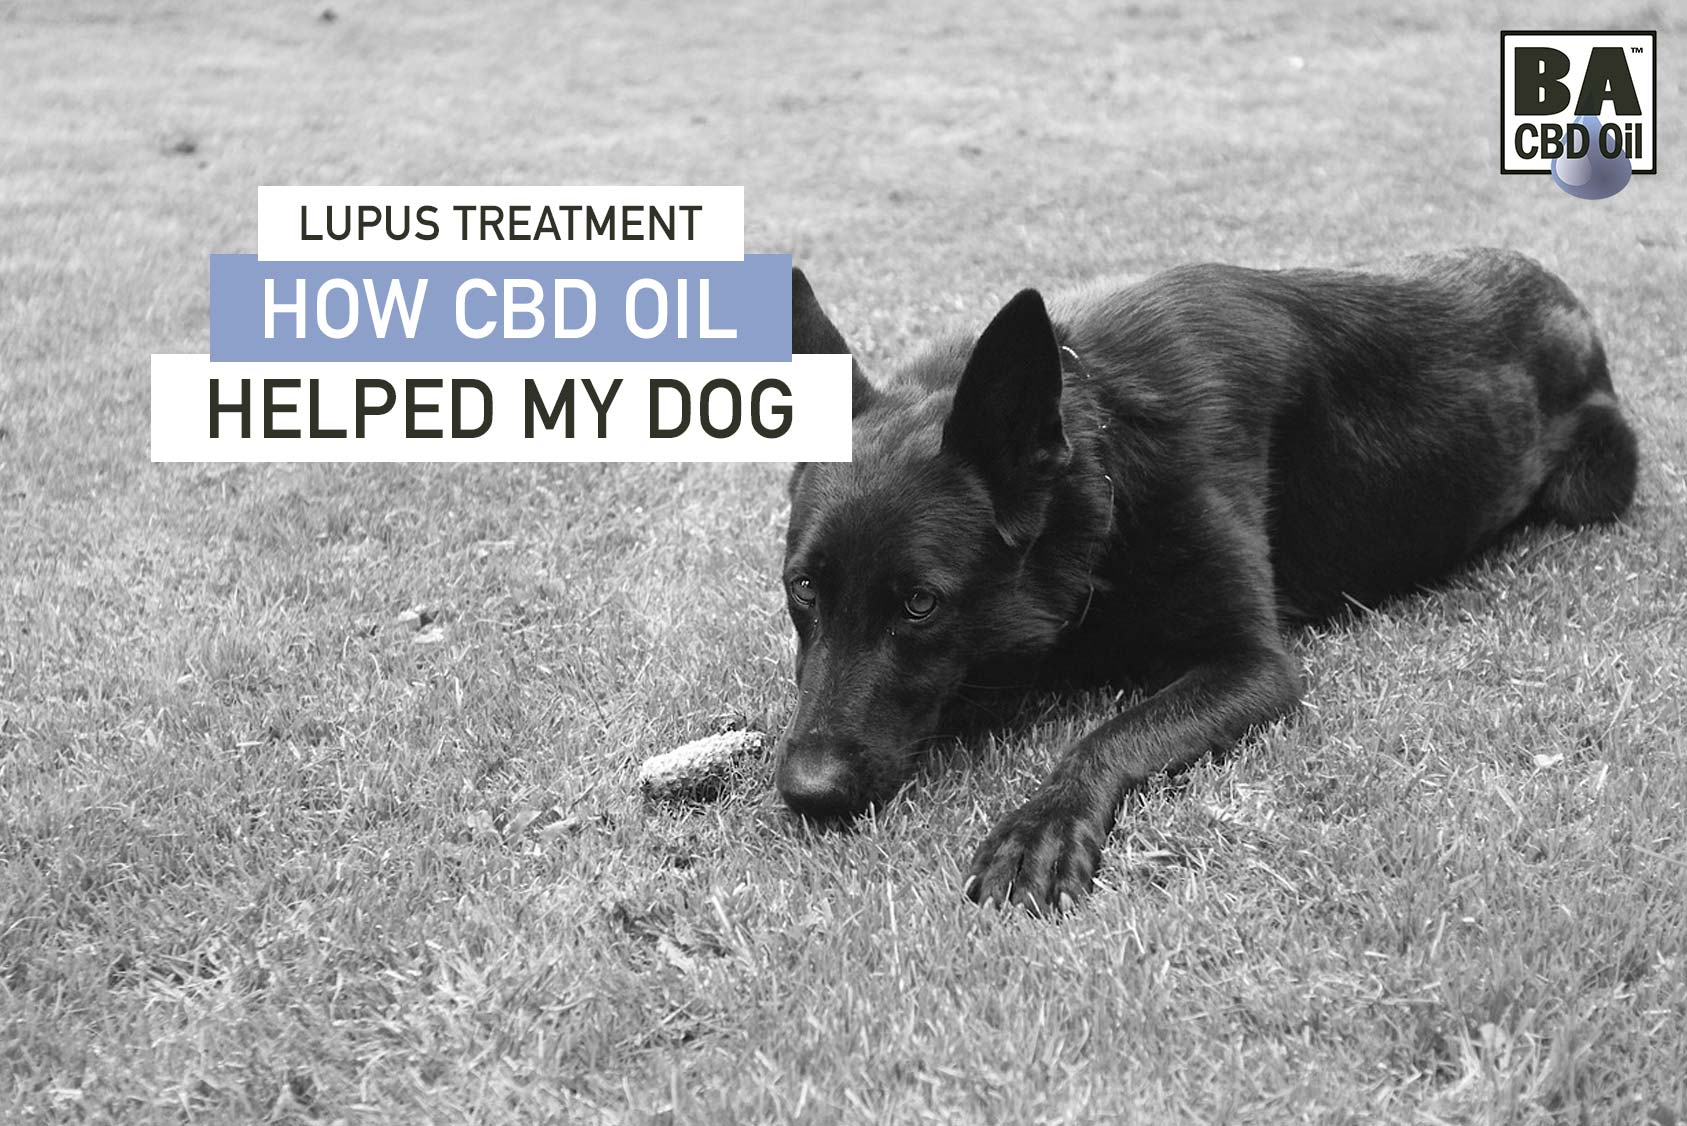 Lupus Treatment